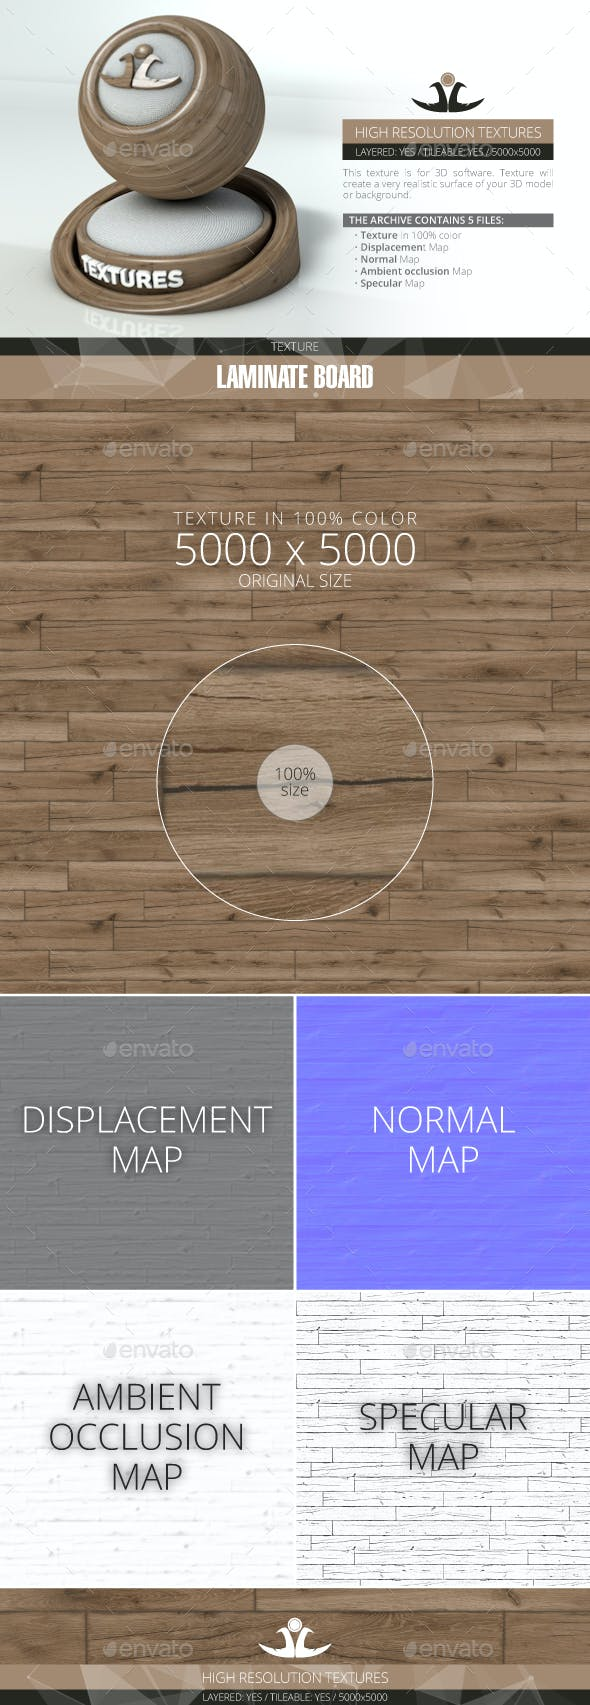 Laminate Board 11 - 3DOcean Item for Sale